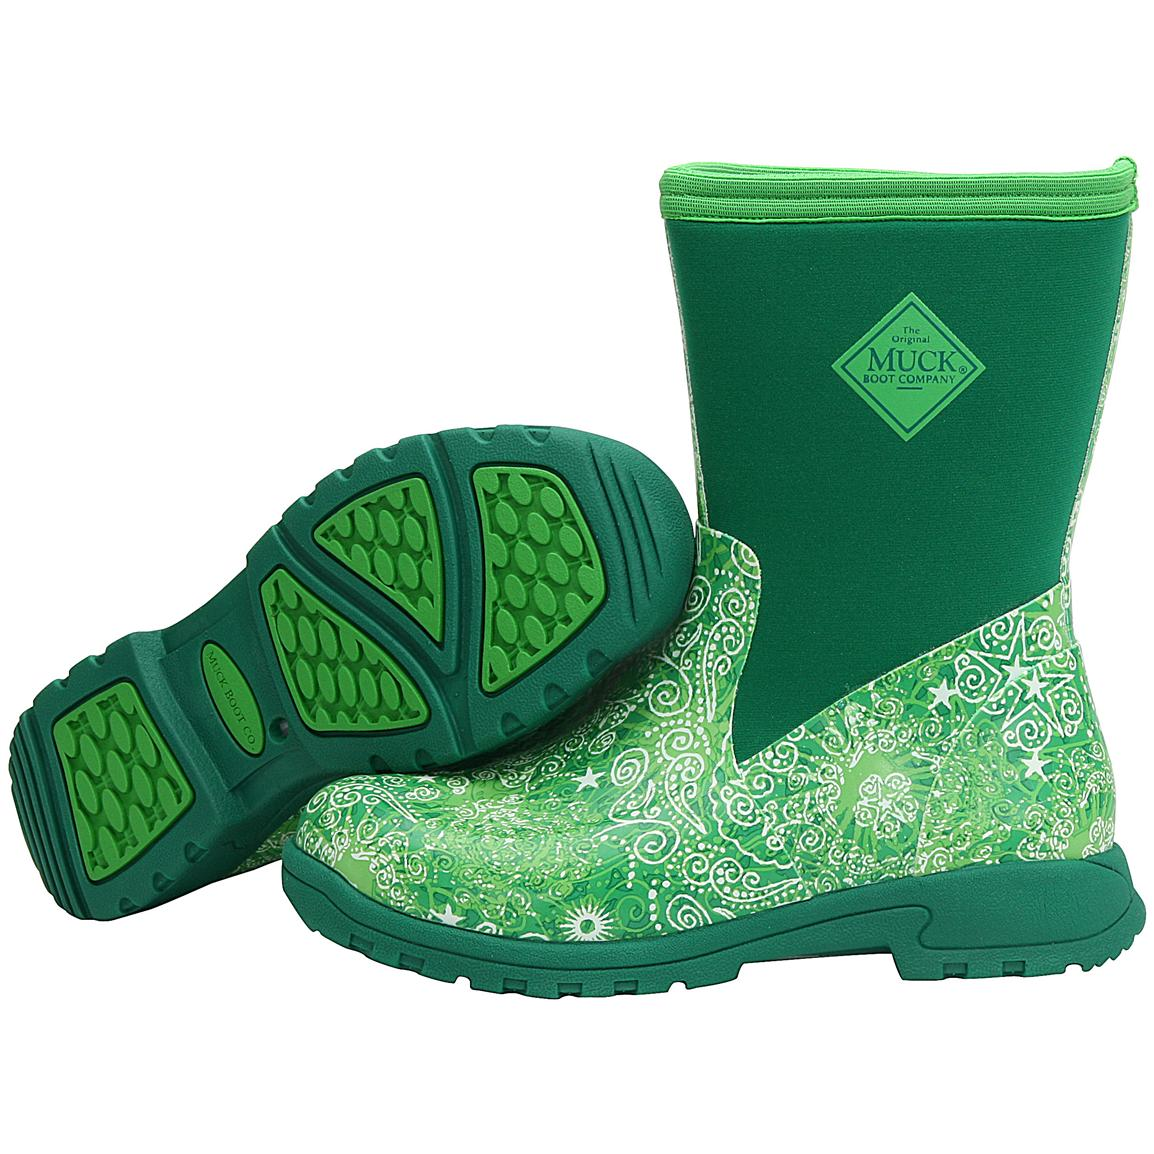 The Muck Boot Company DqKJaIP1